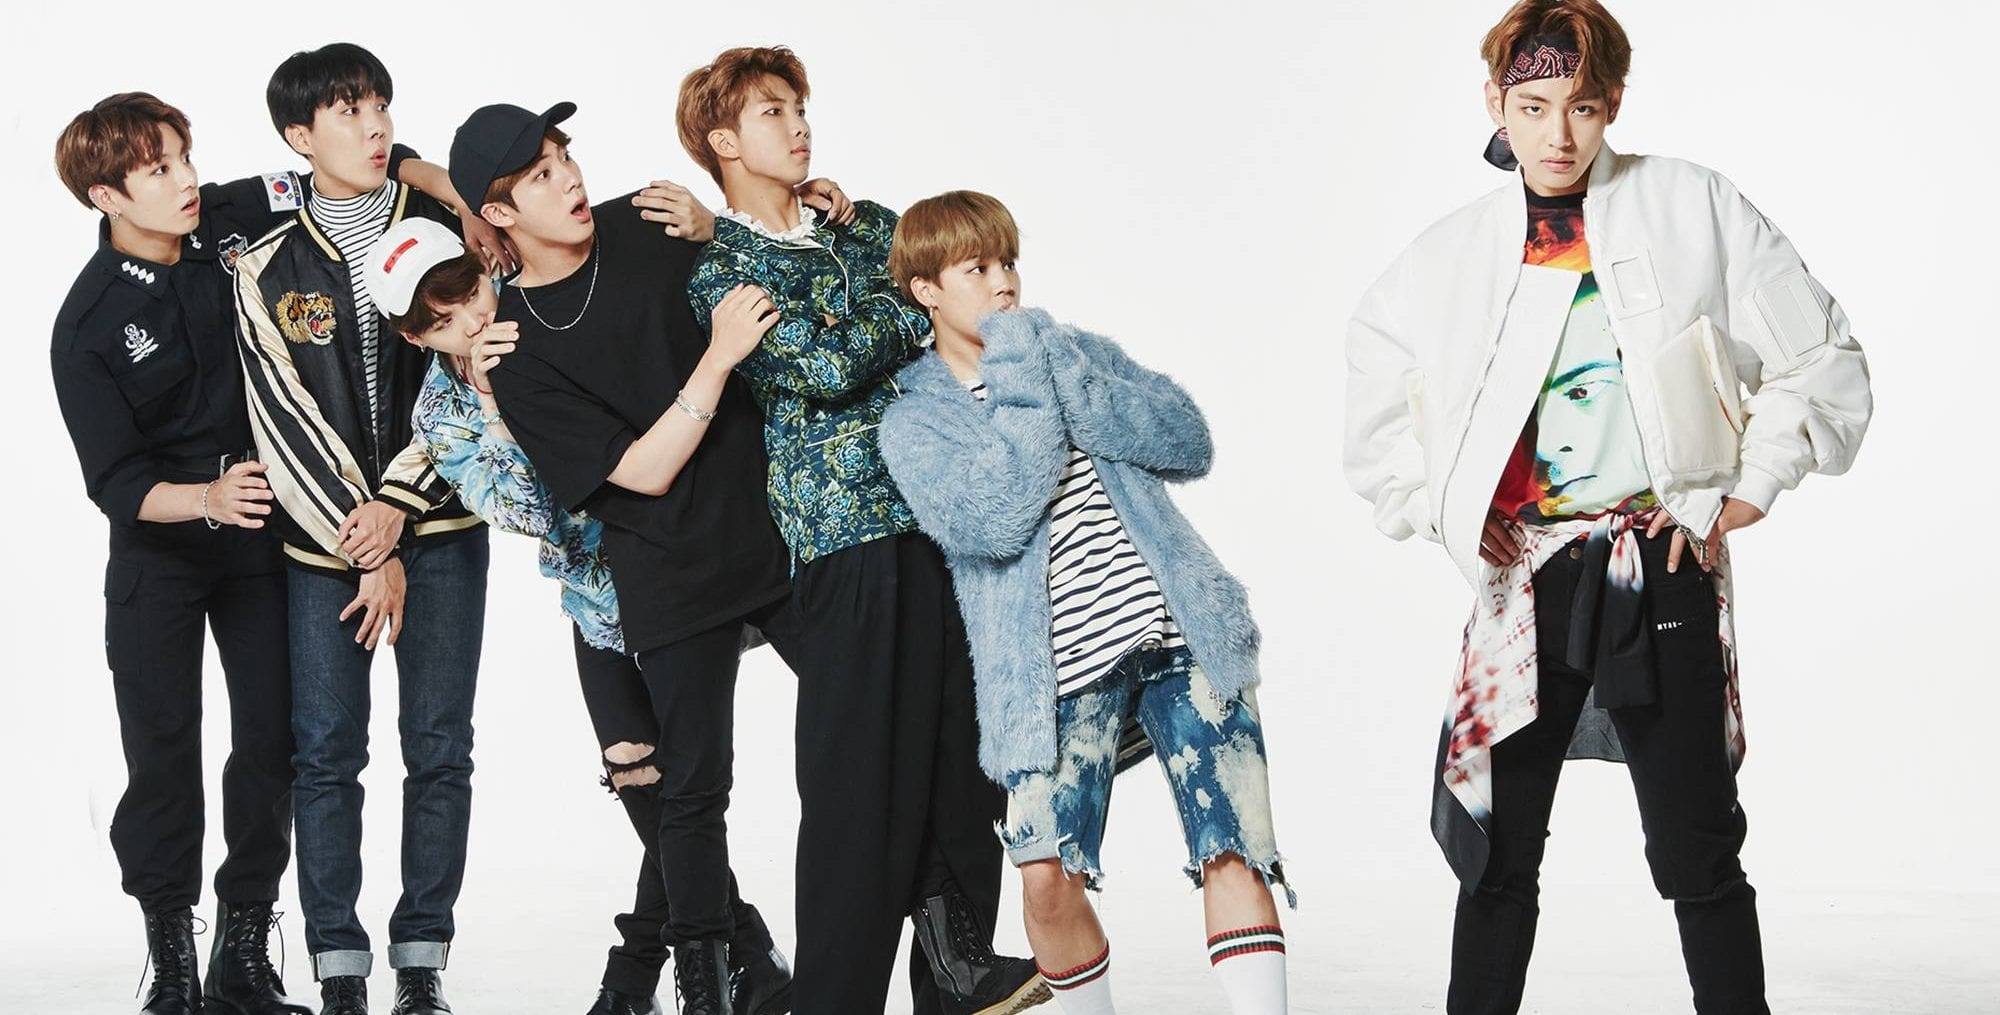 BTS Releases Fun U0026quot;Familyu0026quot; Pictures In Outfits Through The Eras | WTK